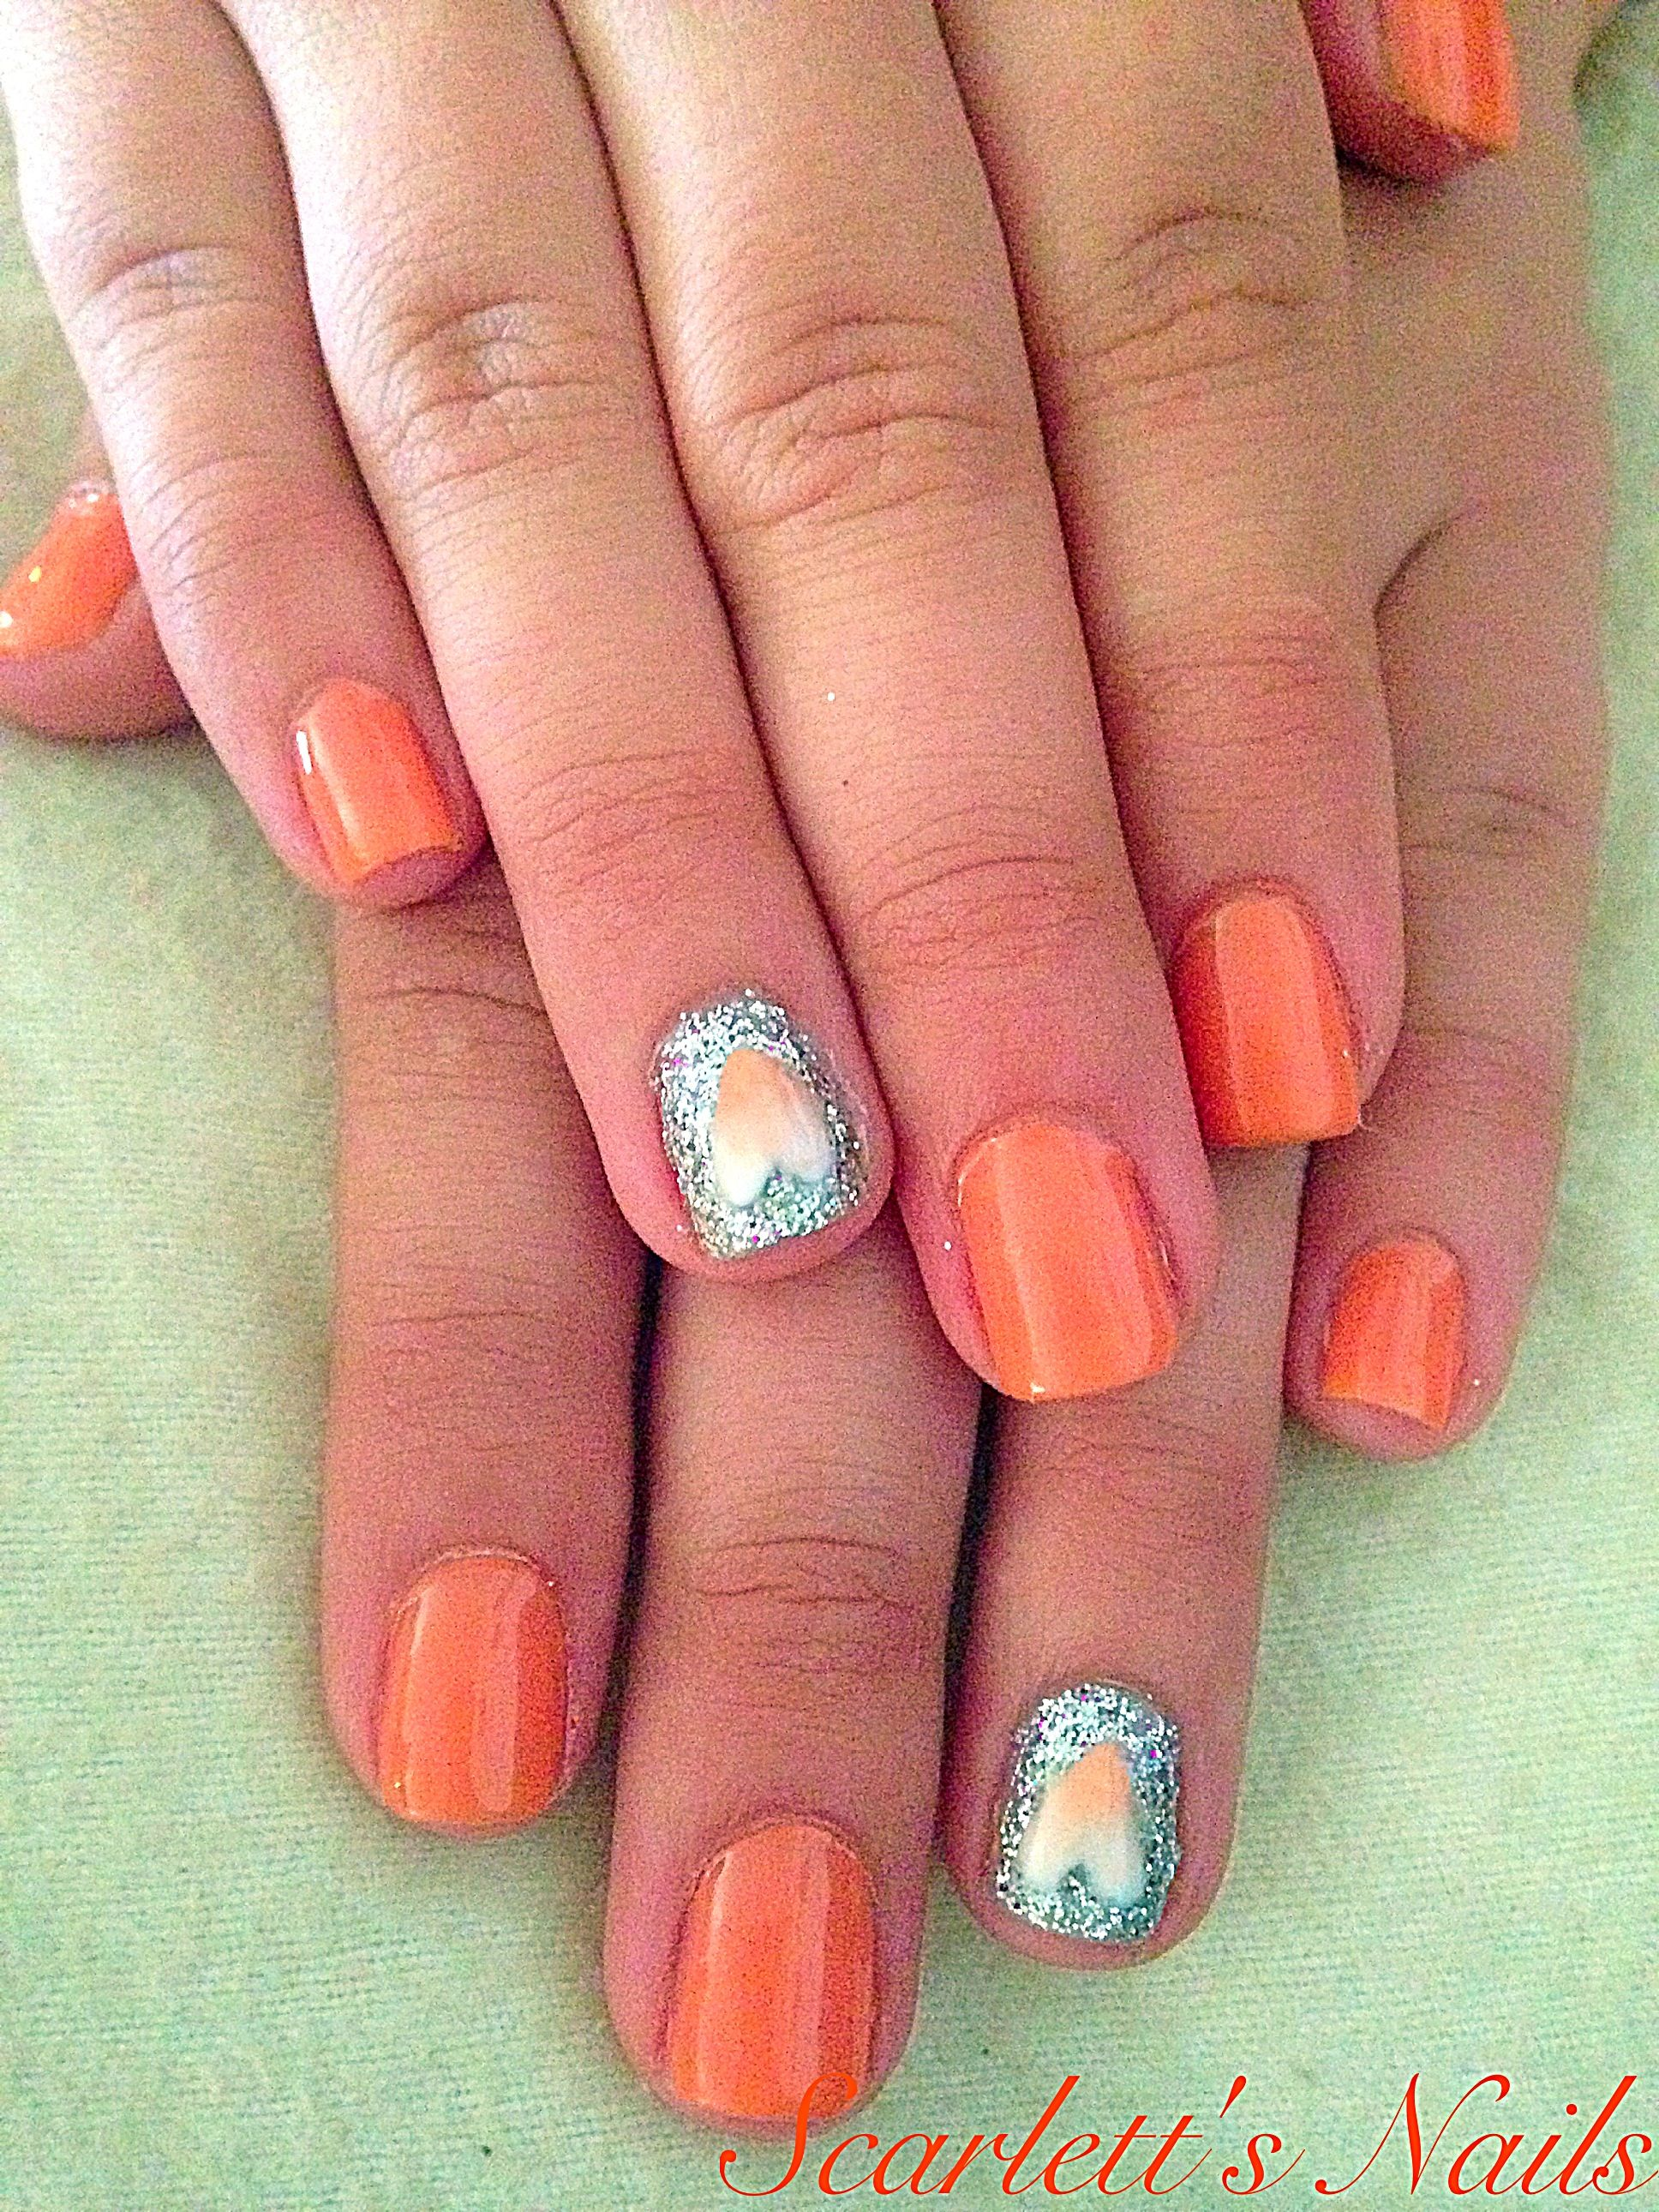 Pin by Ruth on Nails   Sheer nails, Ombre nails, Cute